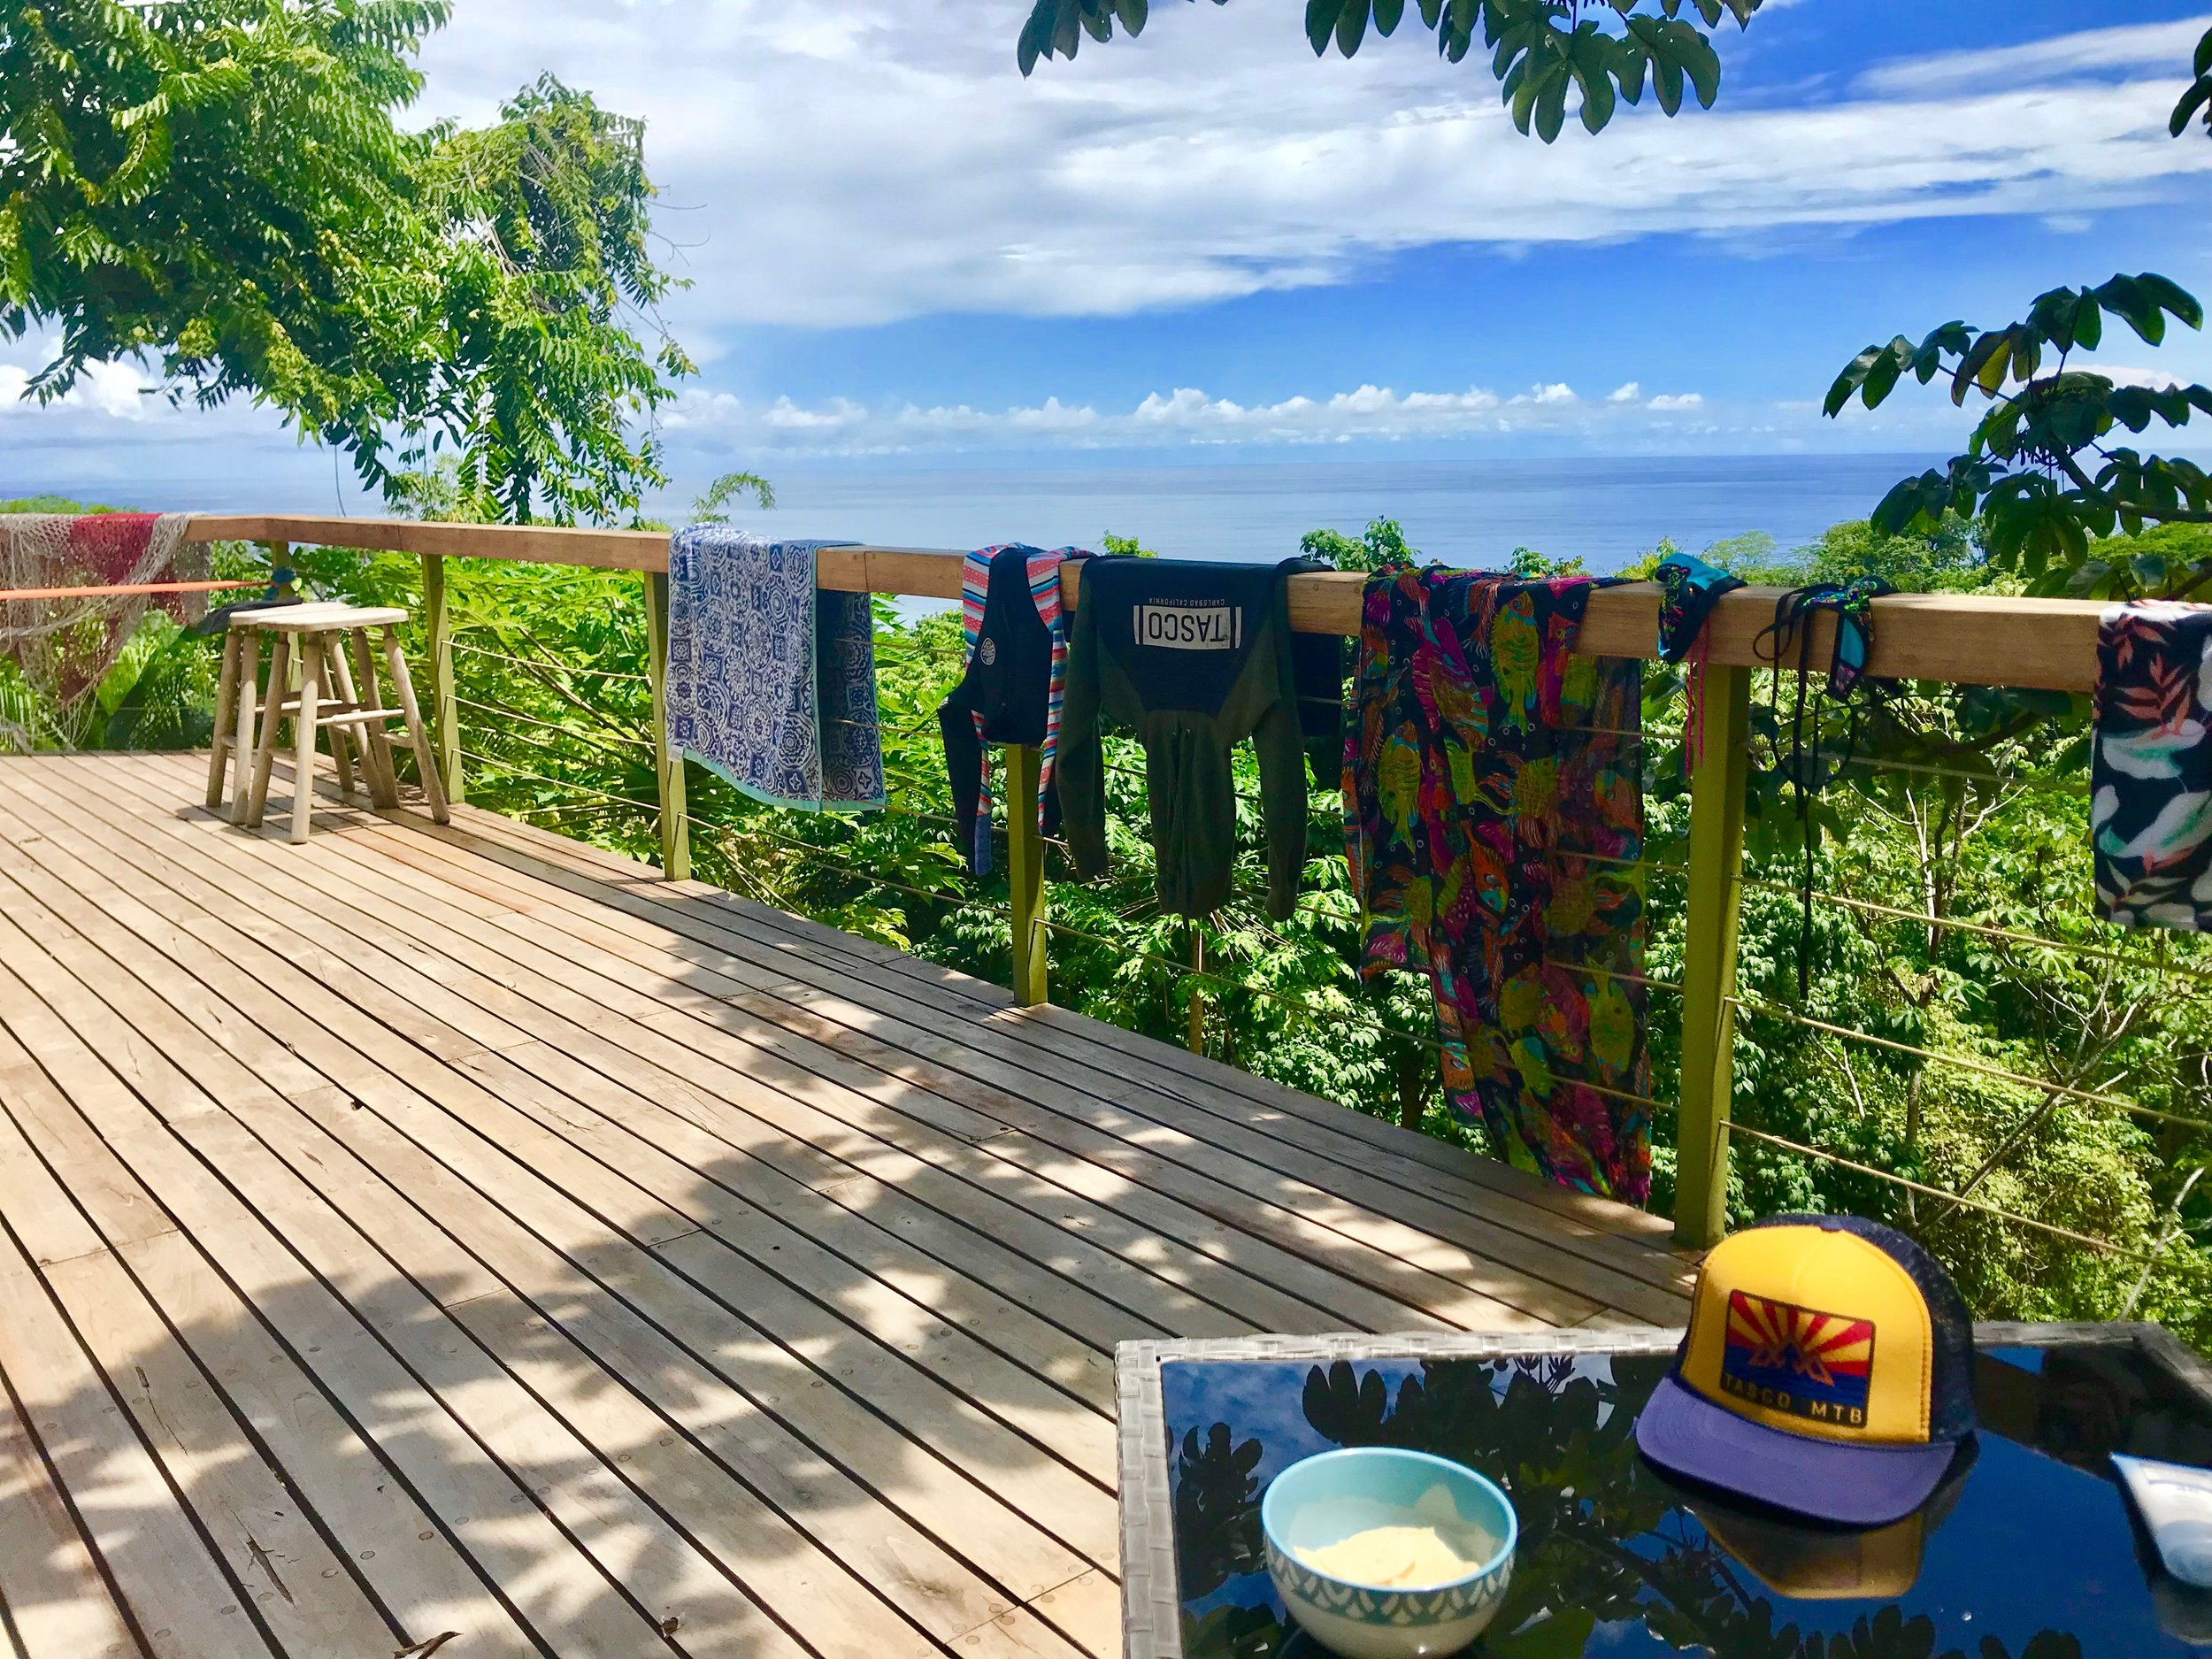 In today's data-driven world, I want to be protected, even when working from this remote office on a beach in Costa Rica.